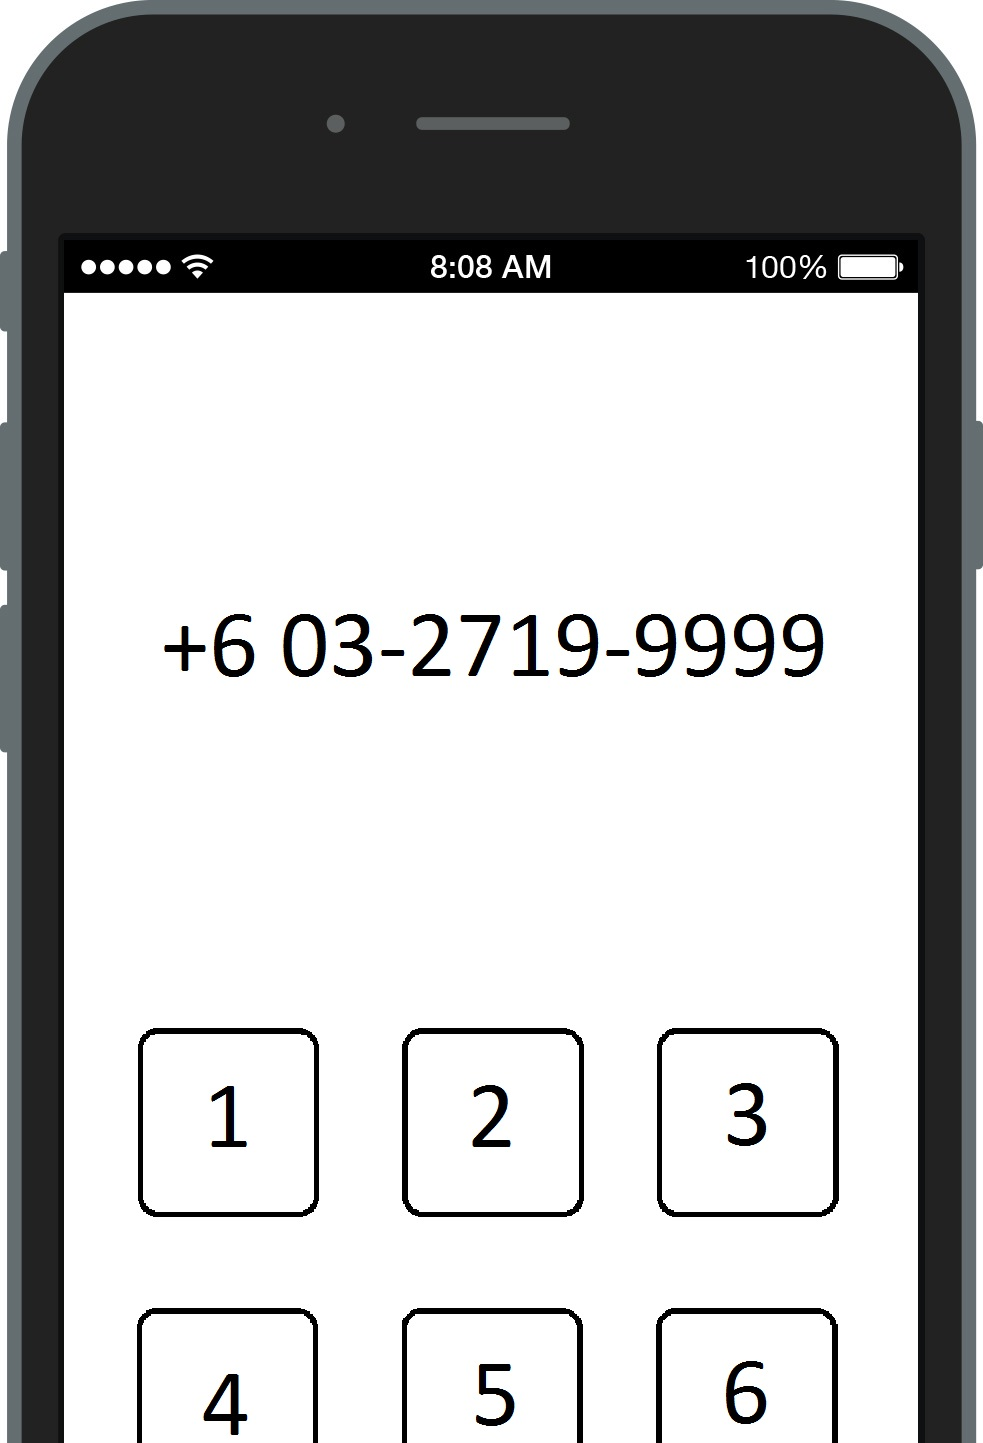 Checking AEON Agreement Number via Phone Dial